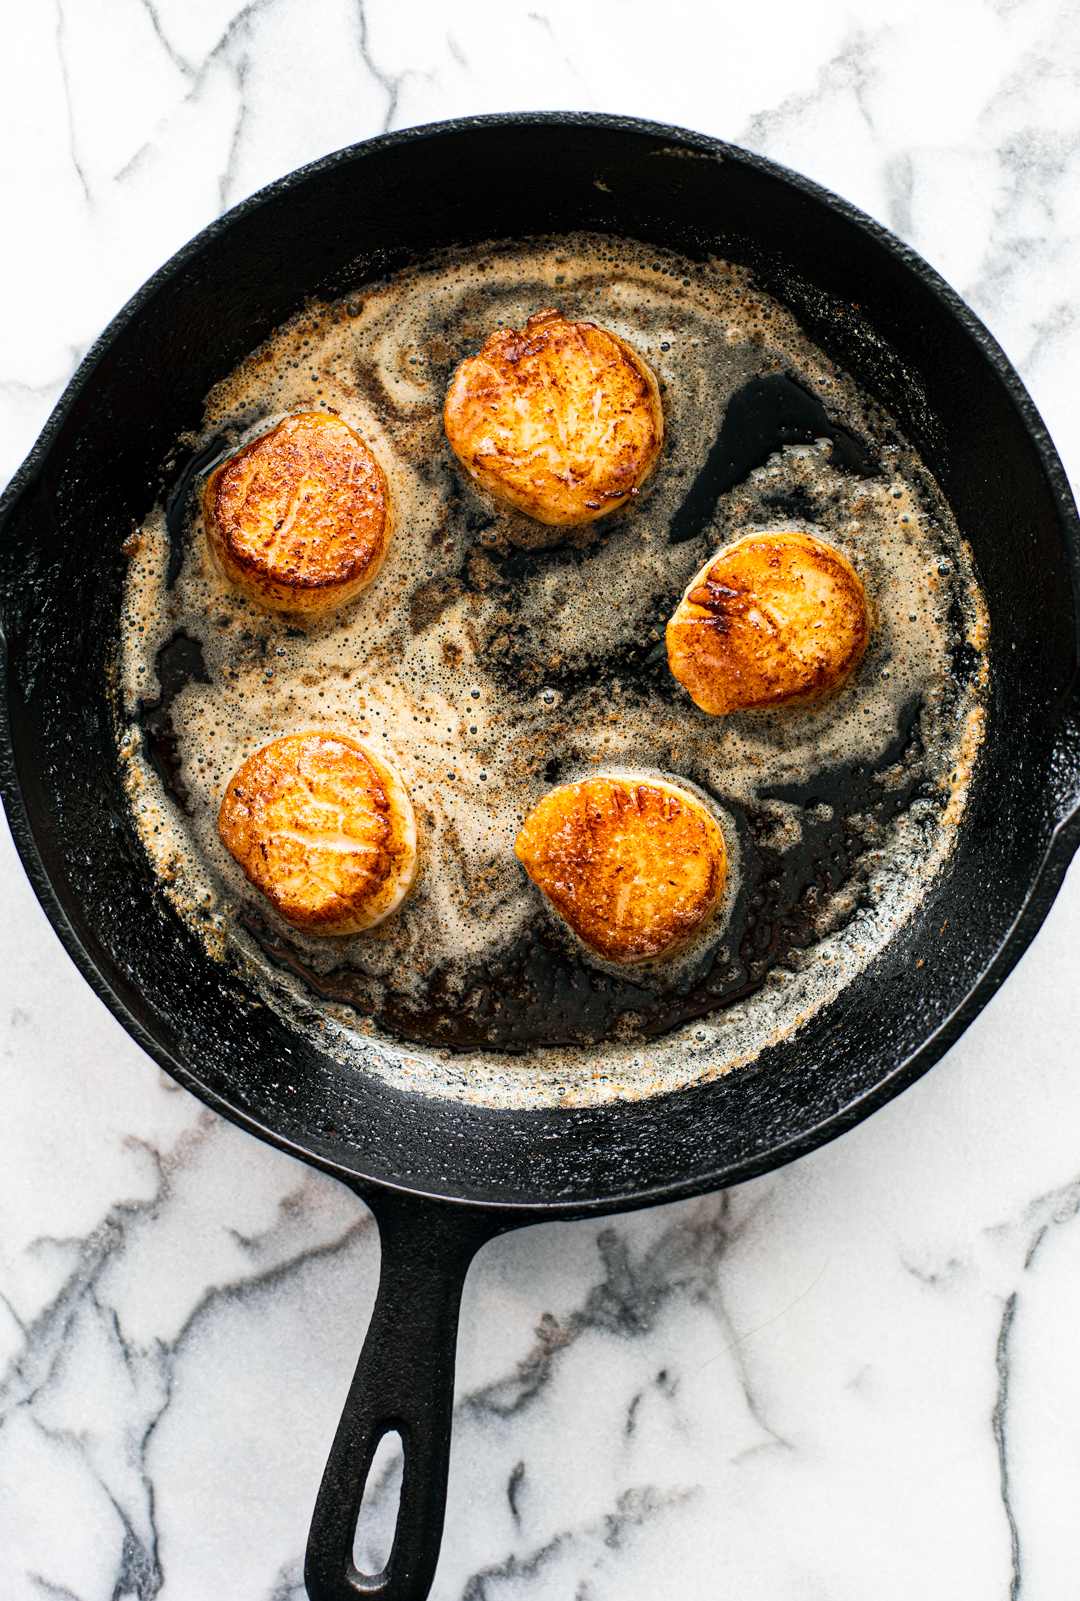 Seared Scallops in a pan with melted butter.